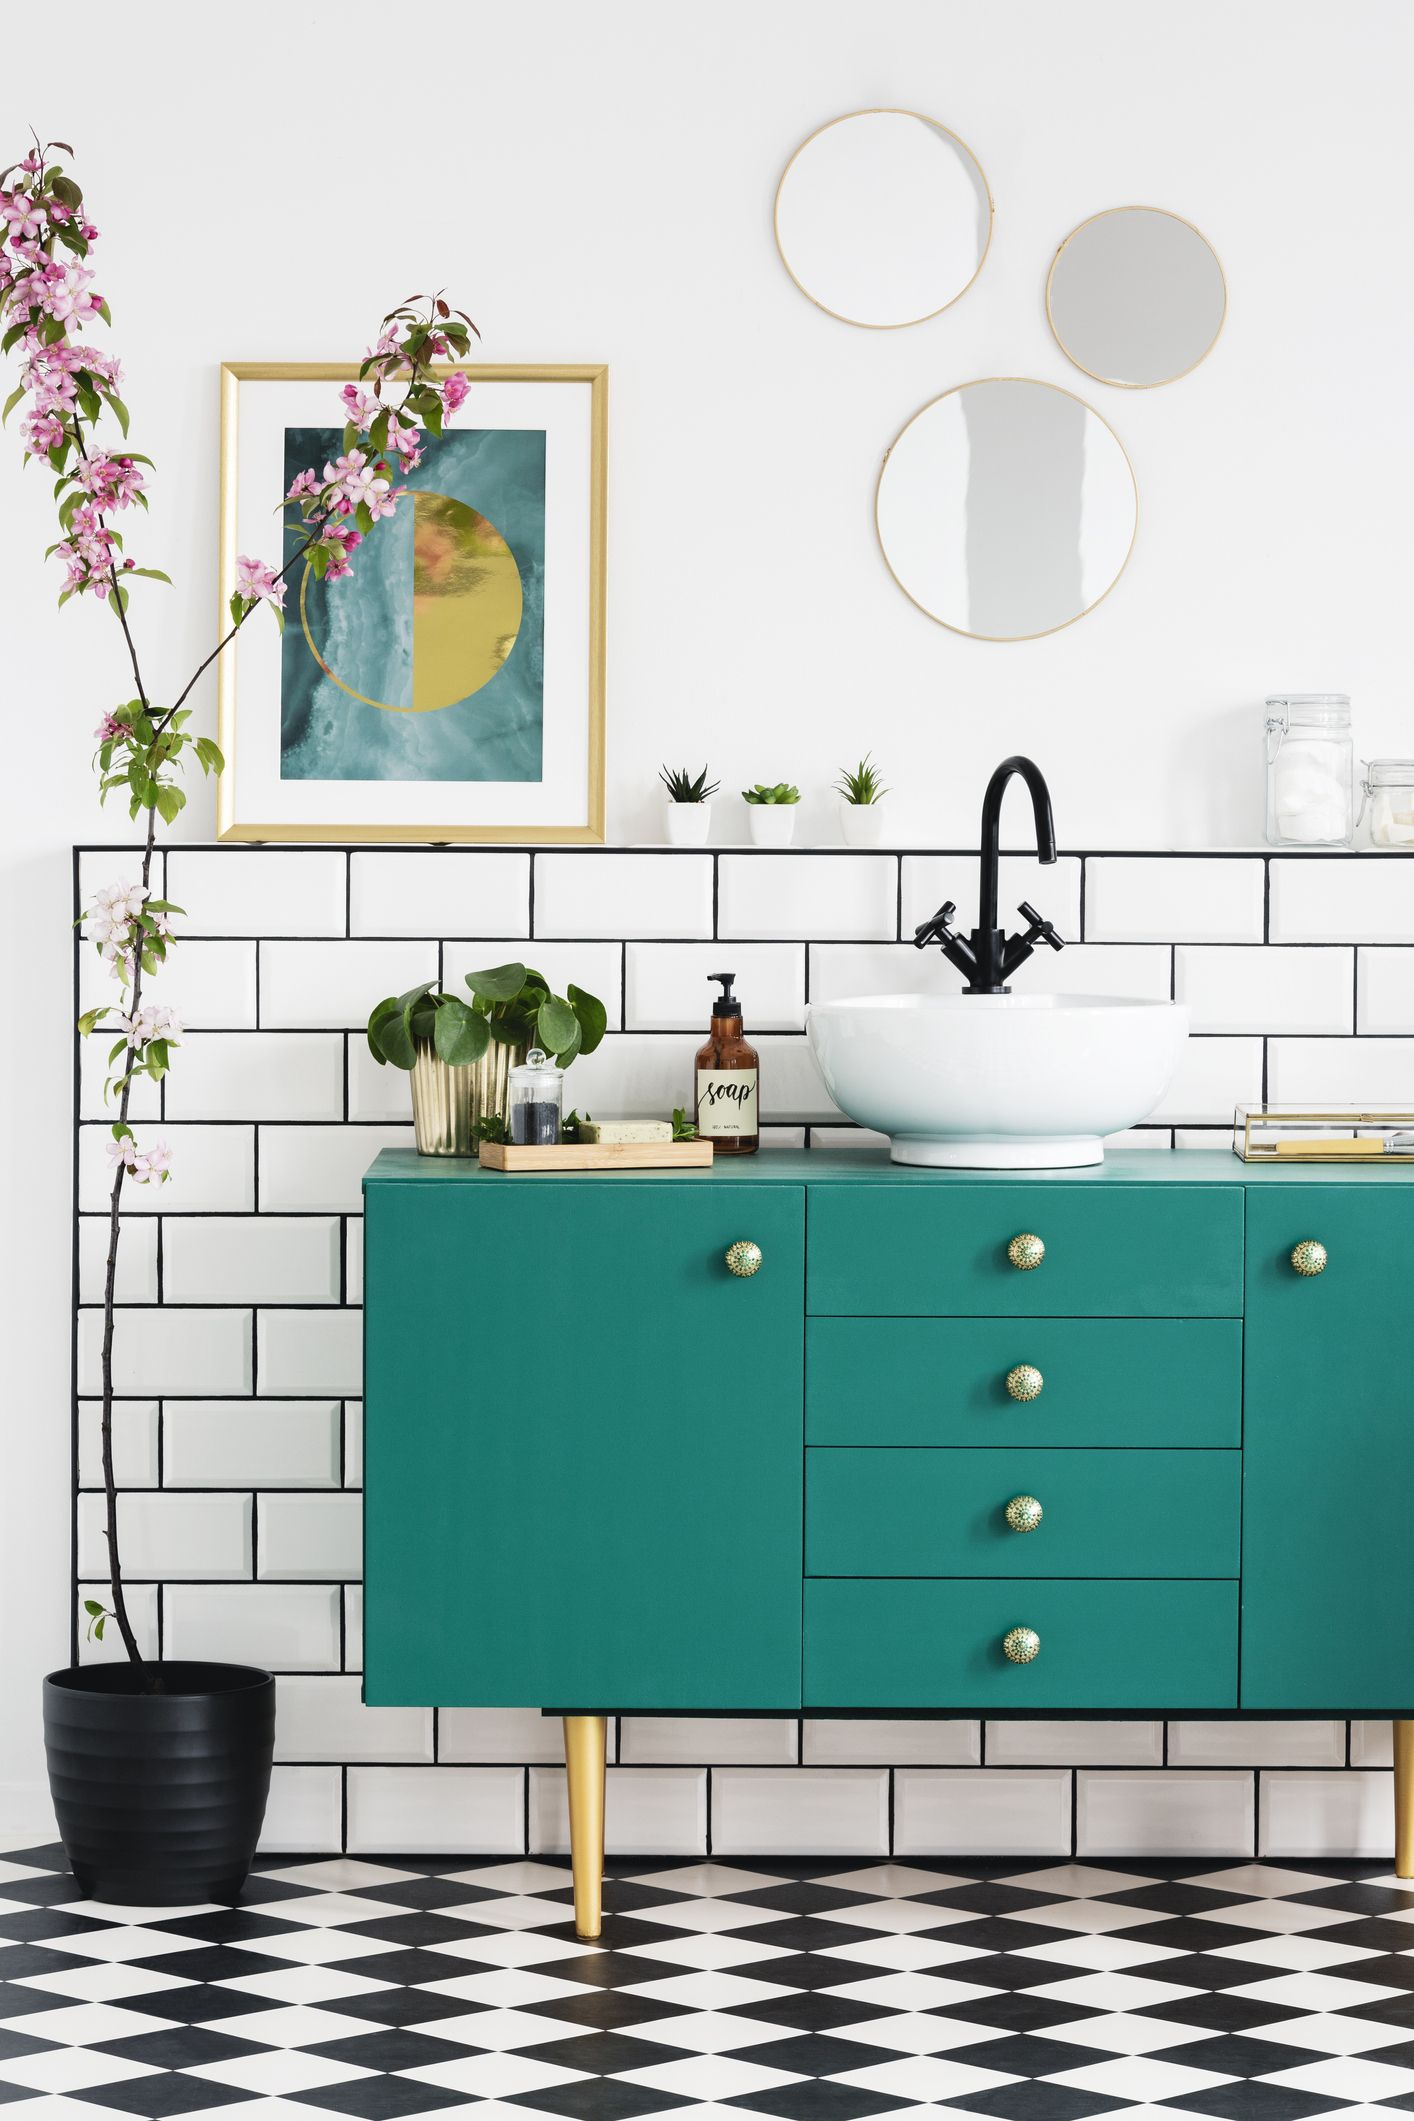 Charming Pink Flowers Next To Green Cabinet In Bathroom Interior With Posters And  Round Mirrors. Real